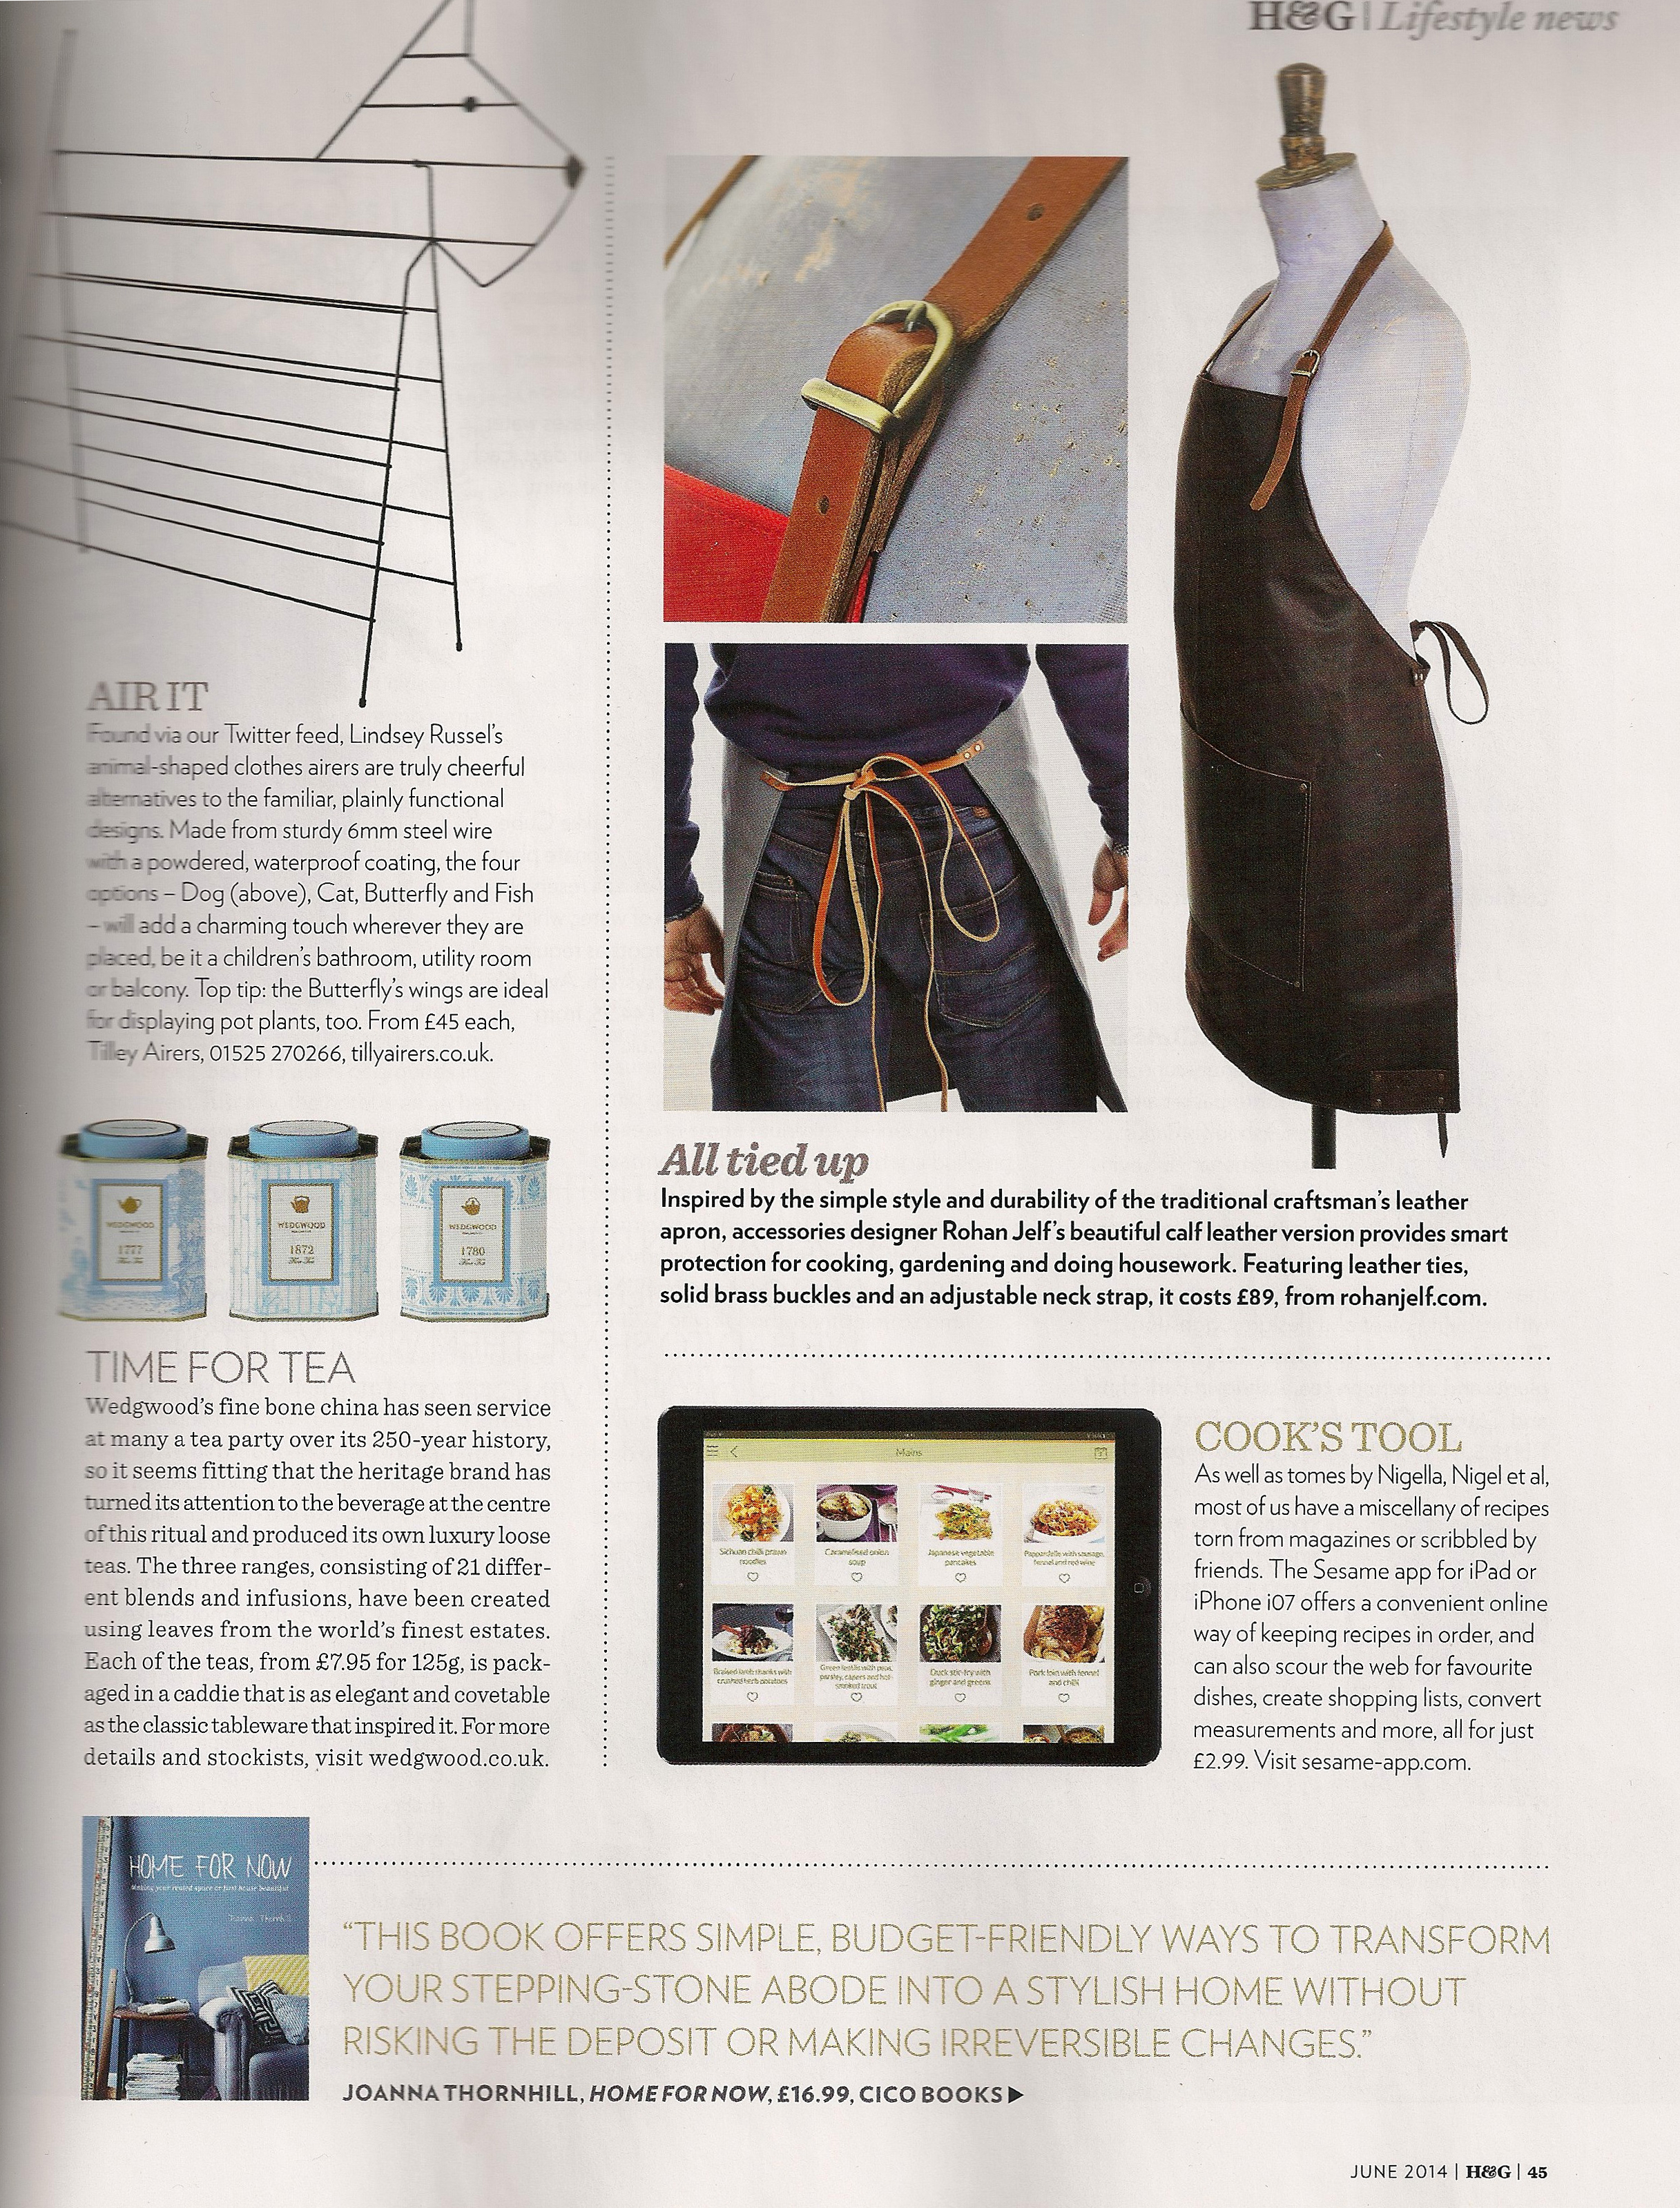 Page in June14 Homes & Gardens with Home for Now by Joanna Thornhill